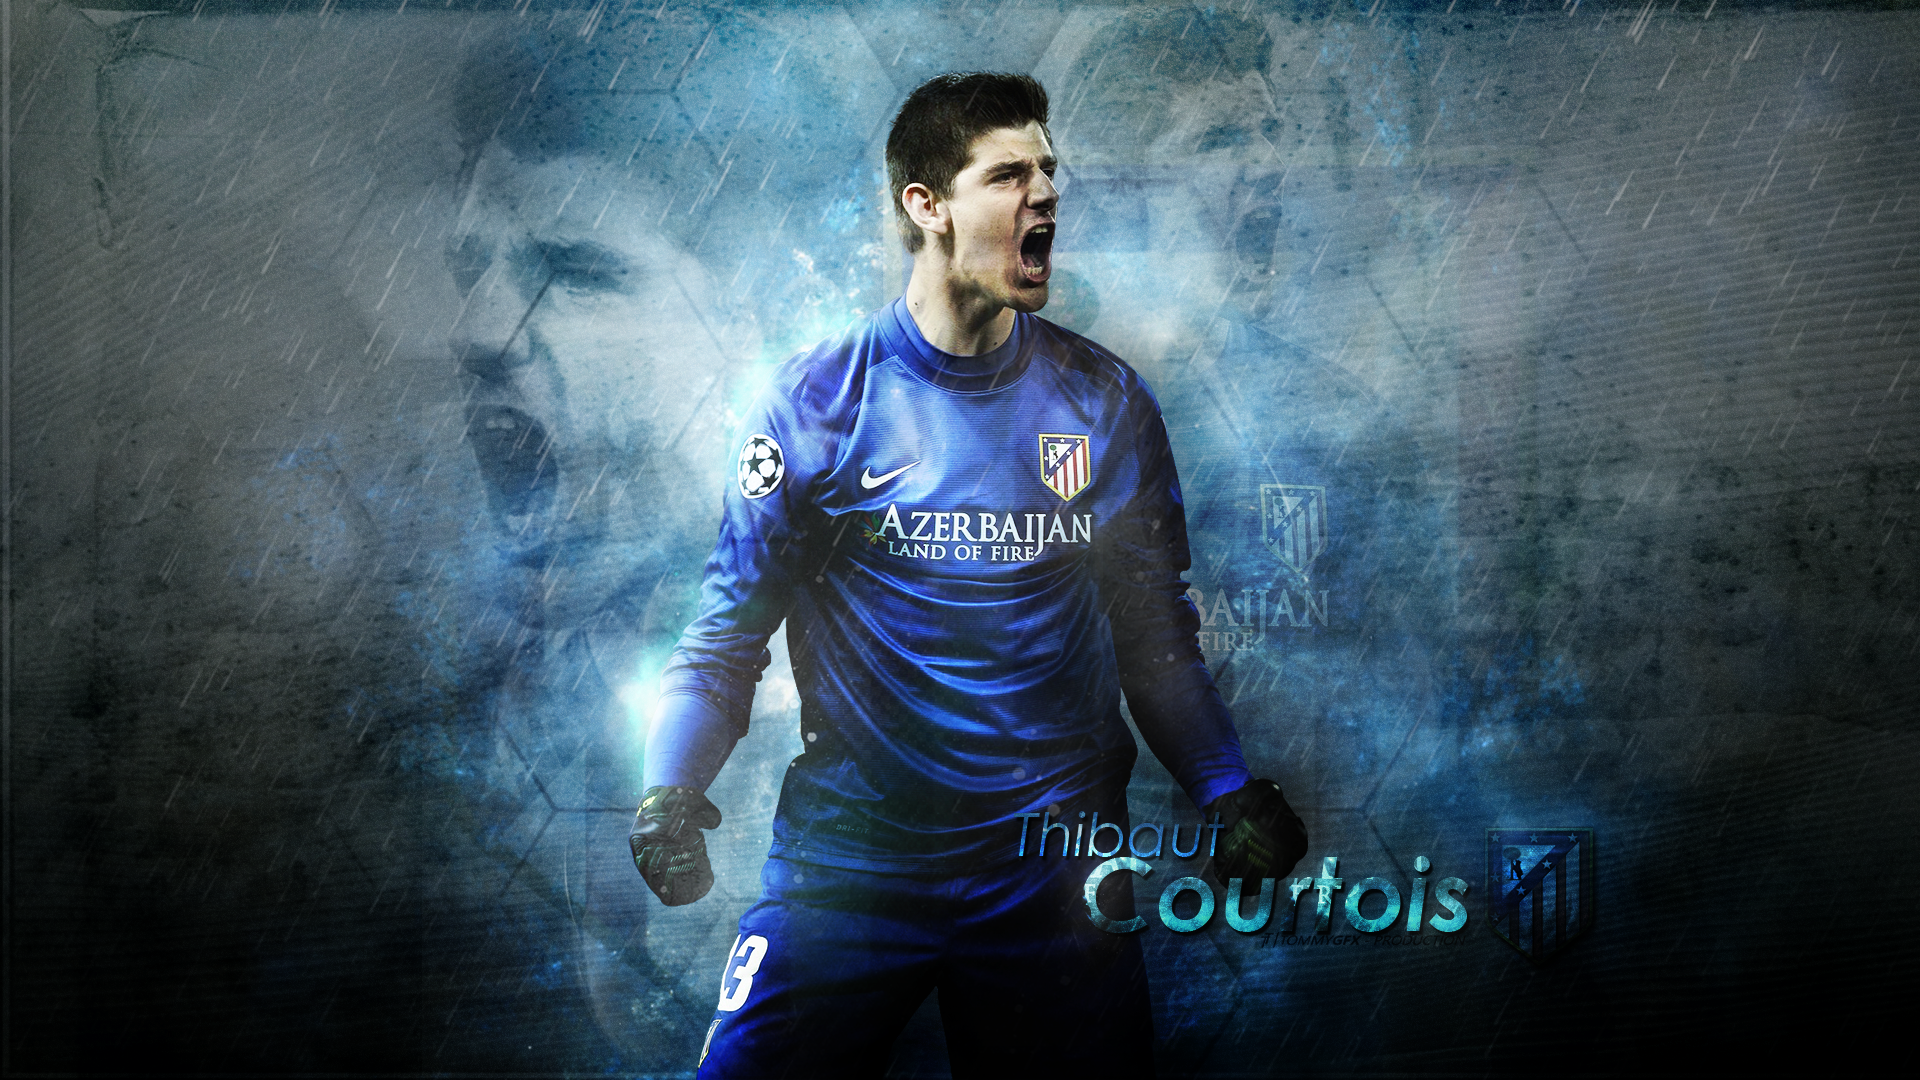 Thibaut Courtois wallpaper   1218402 1920x1080